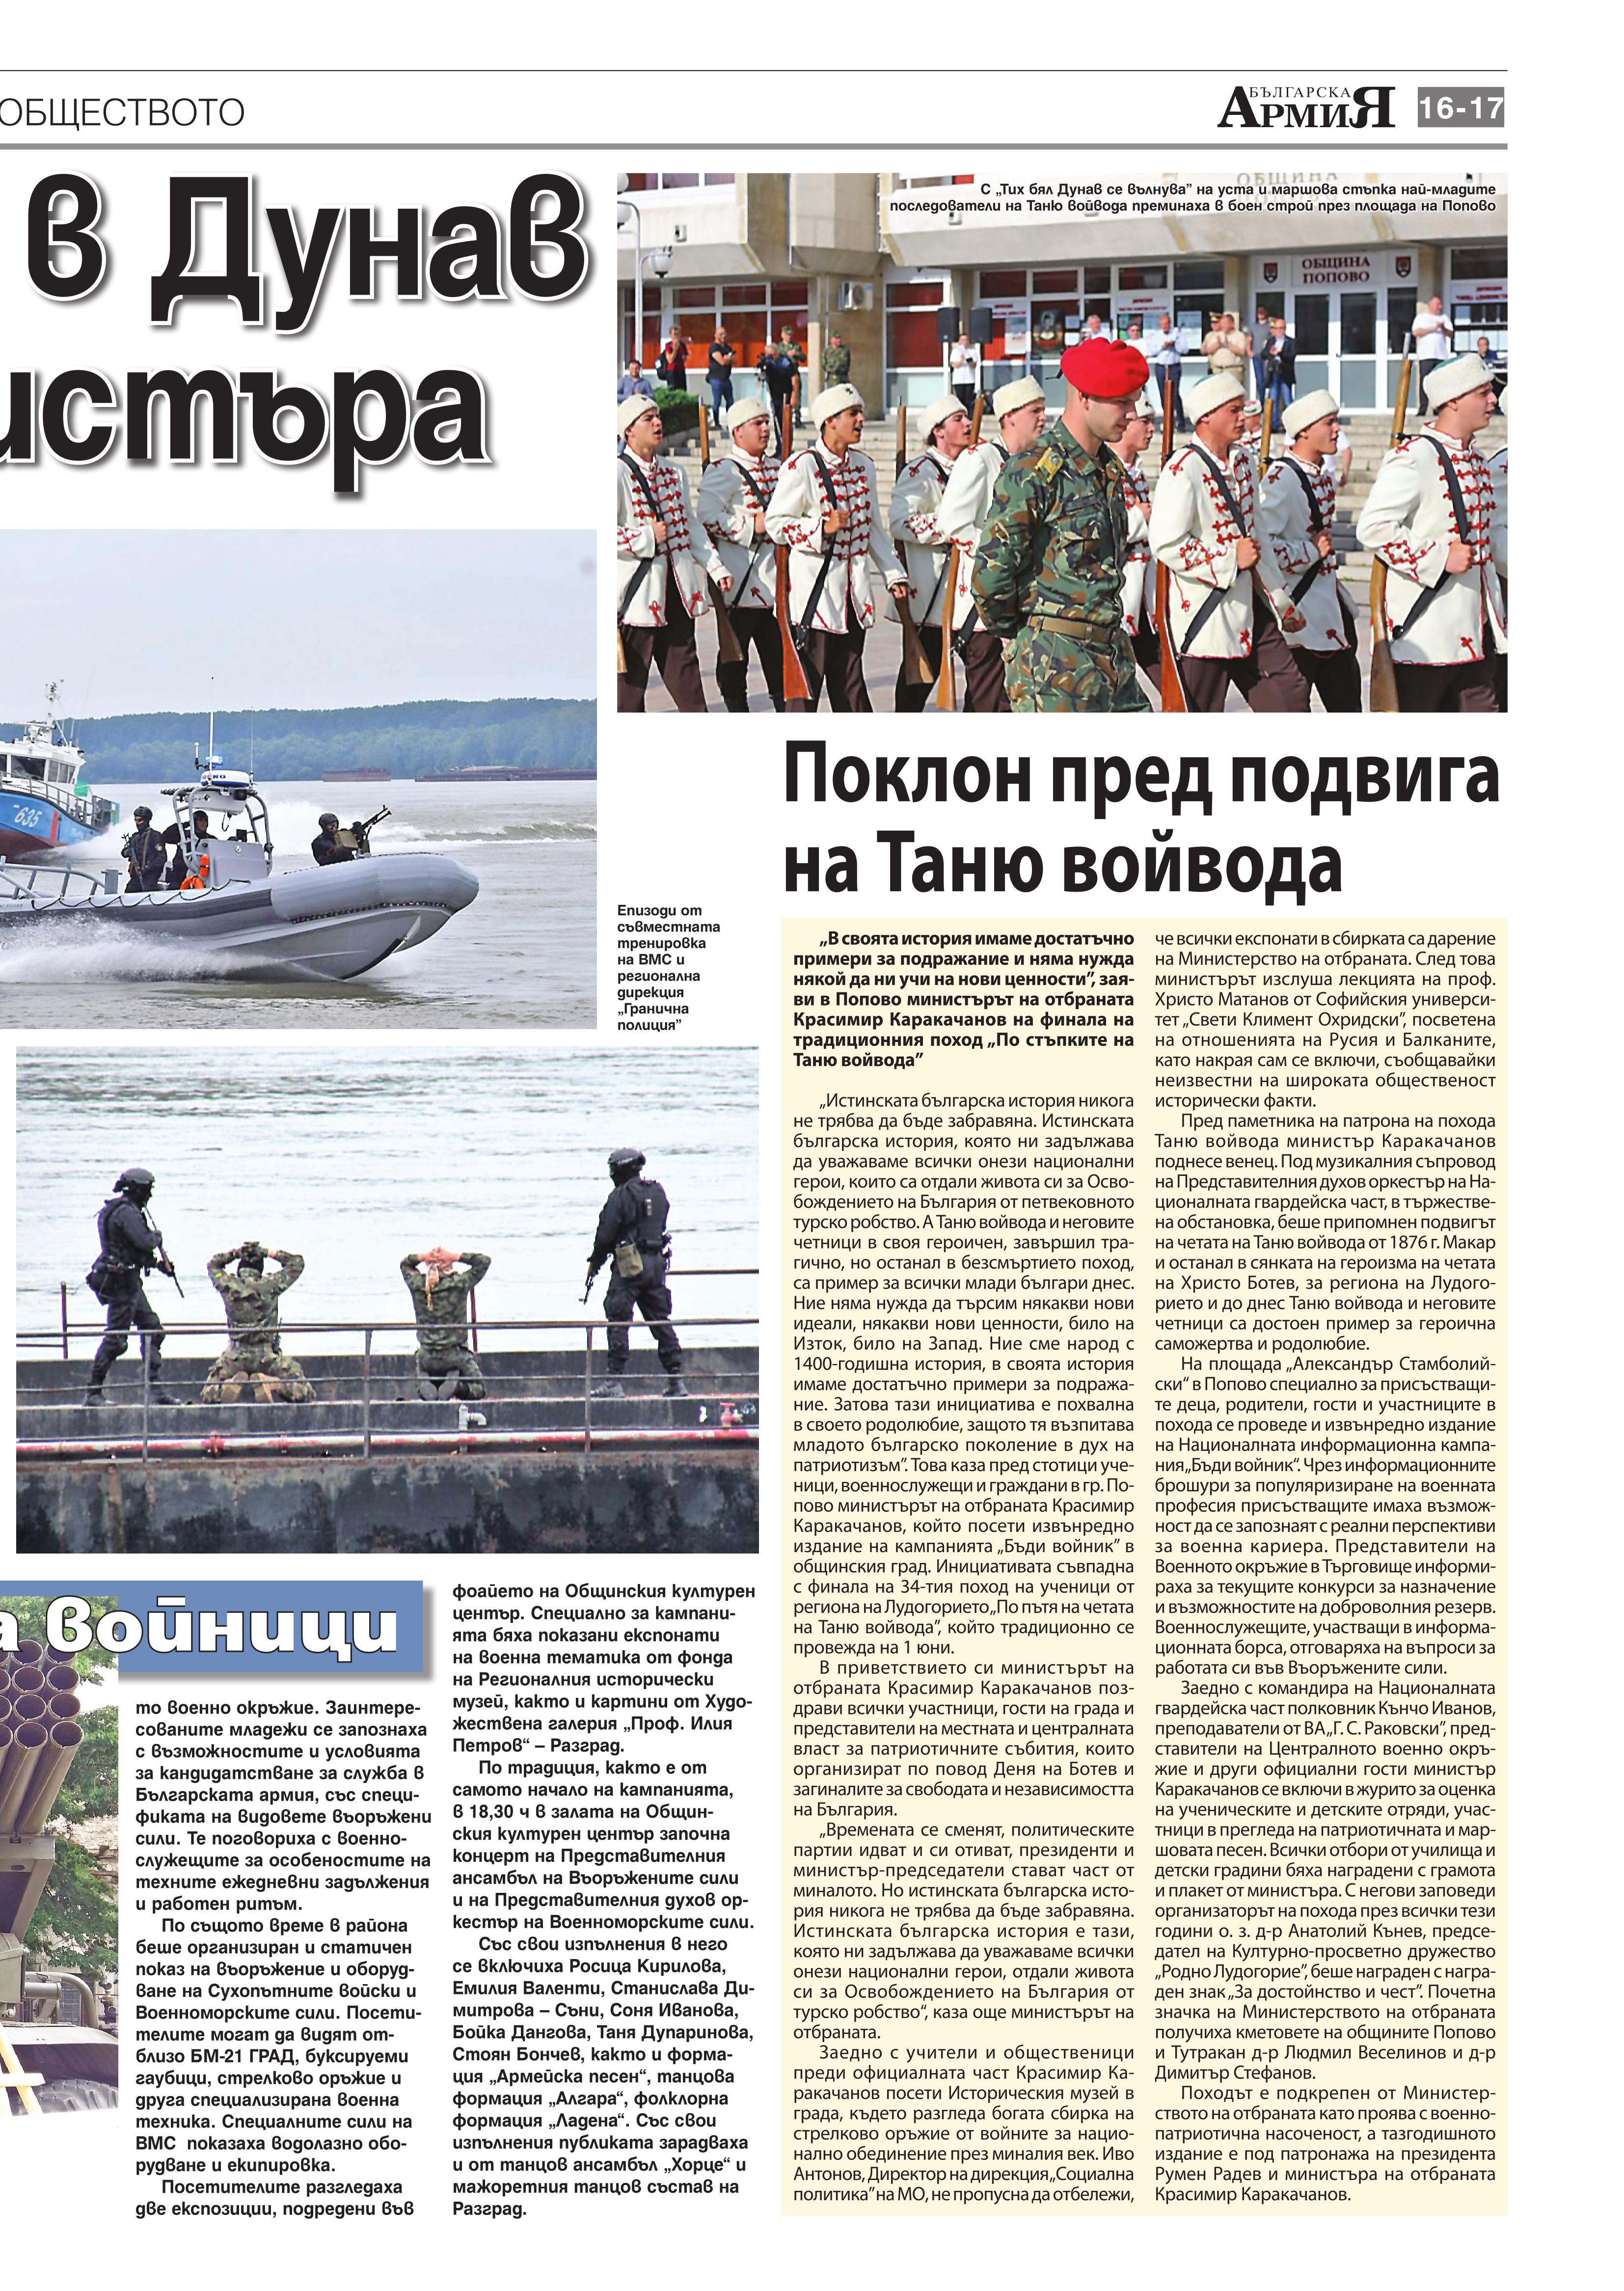 https://armymedia.bg/wp-content/uploads/2015/06/17.page1_-98.jpg